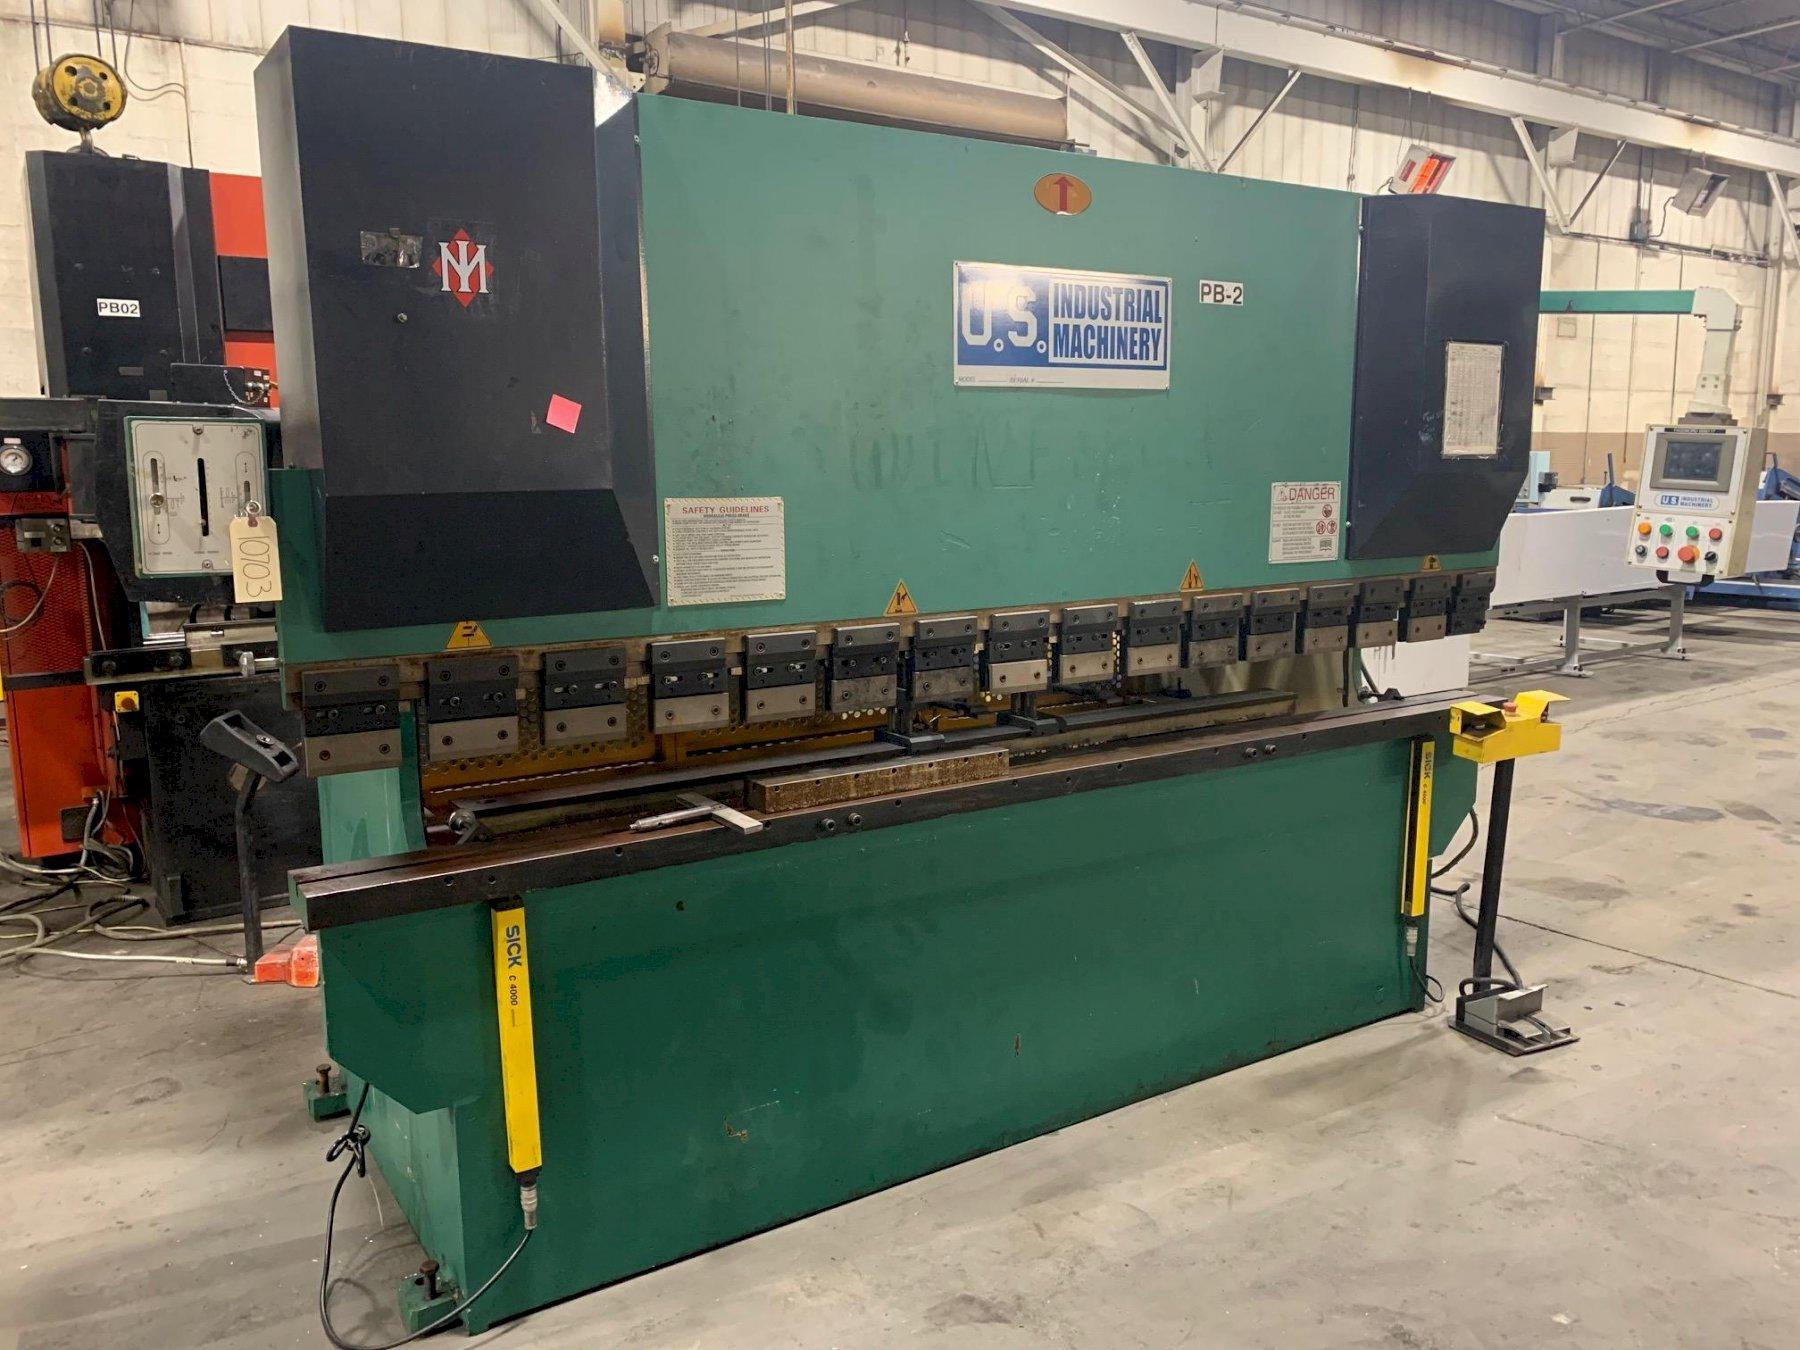 USED U.S. INDUSTRIAL 88 TON X 10' HYDRAULIC 2-AXIS CNC PRESS BRAKE, Year 2004, Stock #10703